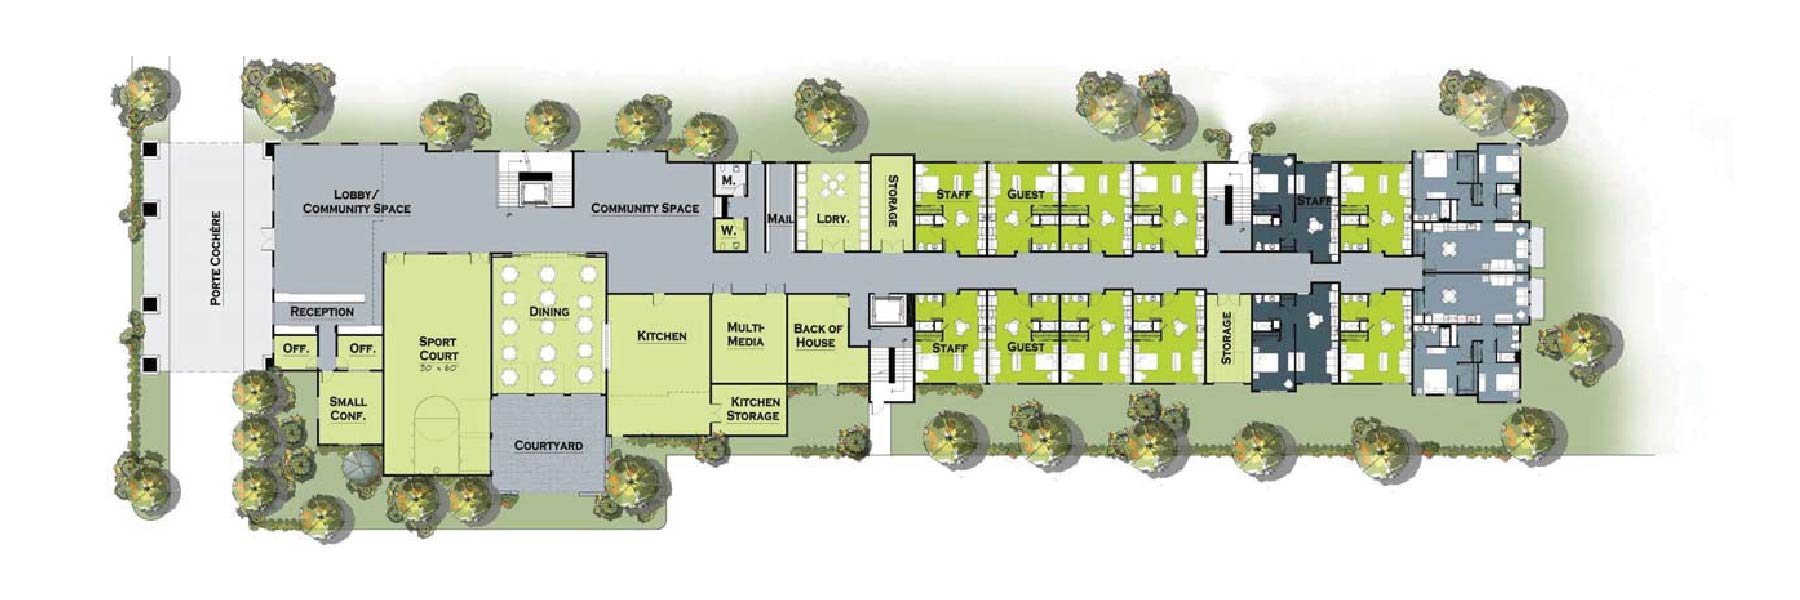 Trailhead Ground Level Floor Plans